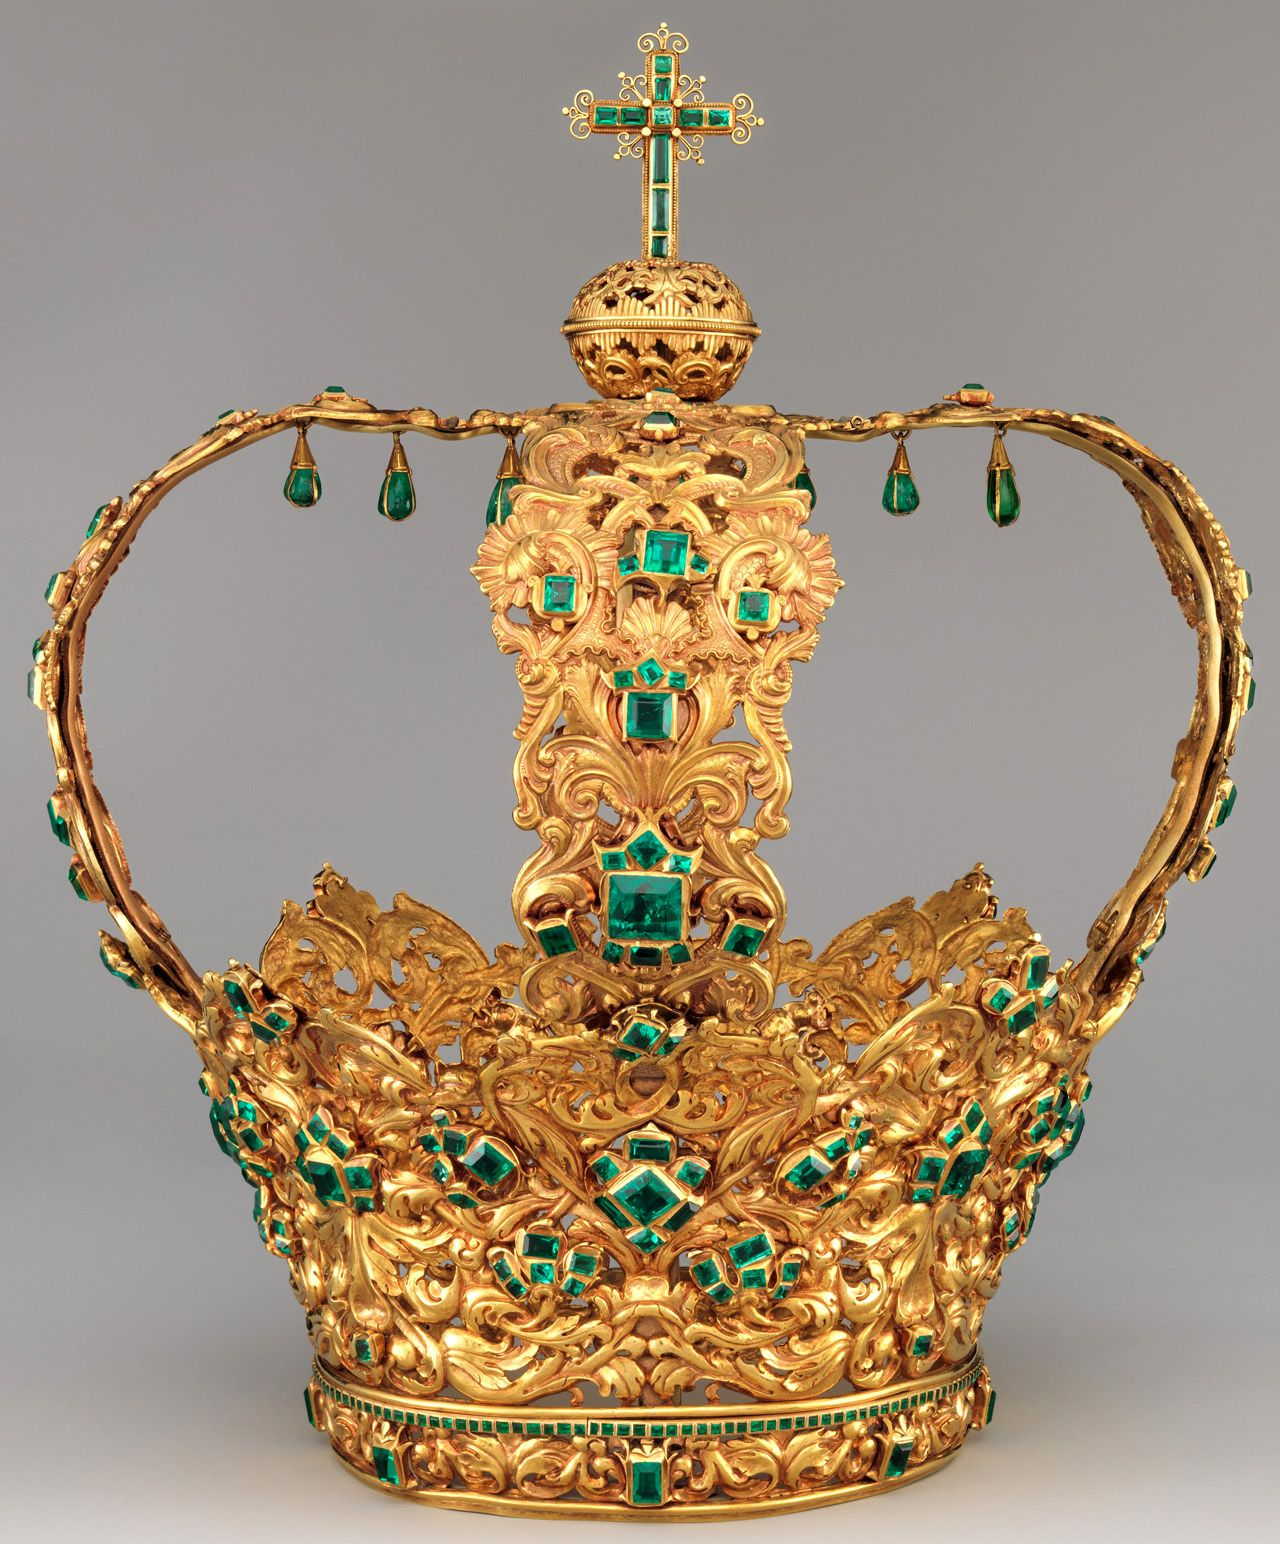 ufansius: The Crown of the Andes, made to be worn by an image of the Virgin of the Immaculate Conception in the cathedral of Popayán, Colombia circa 1660 (arches added circa 1770).